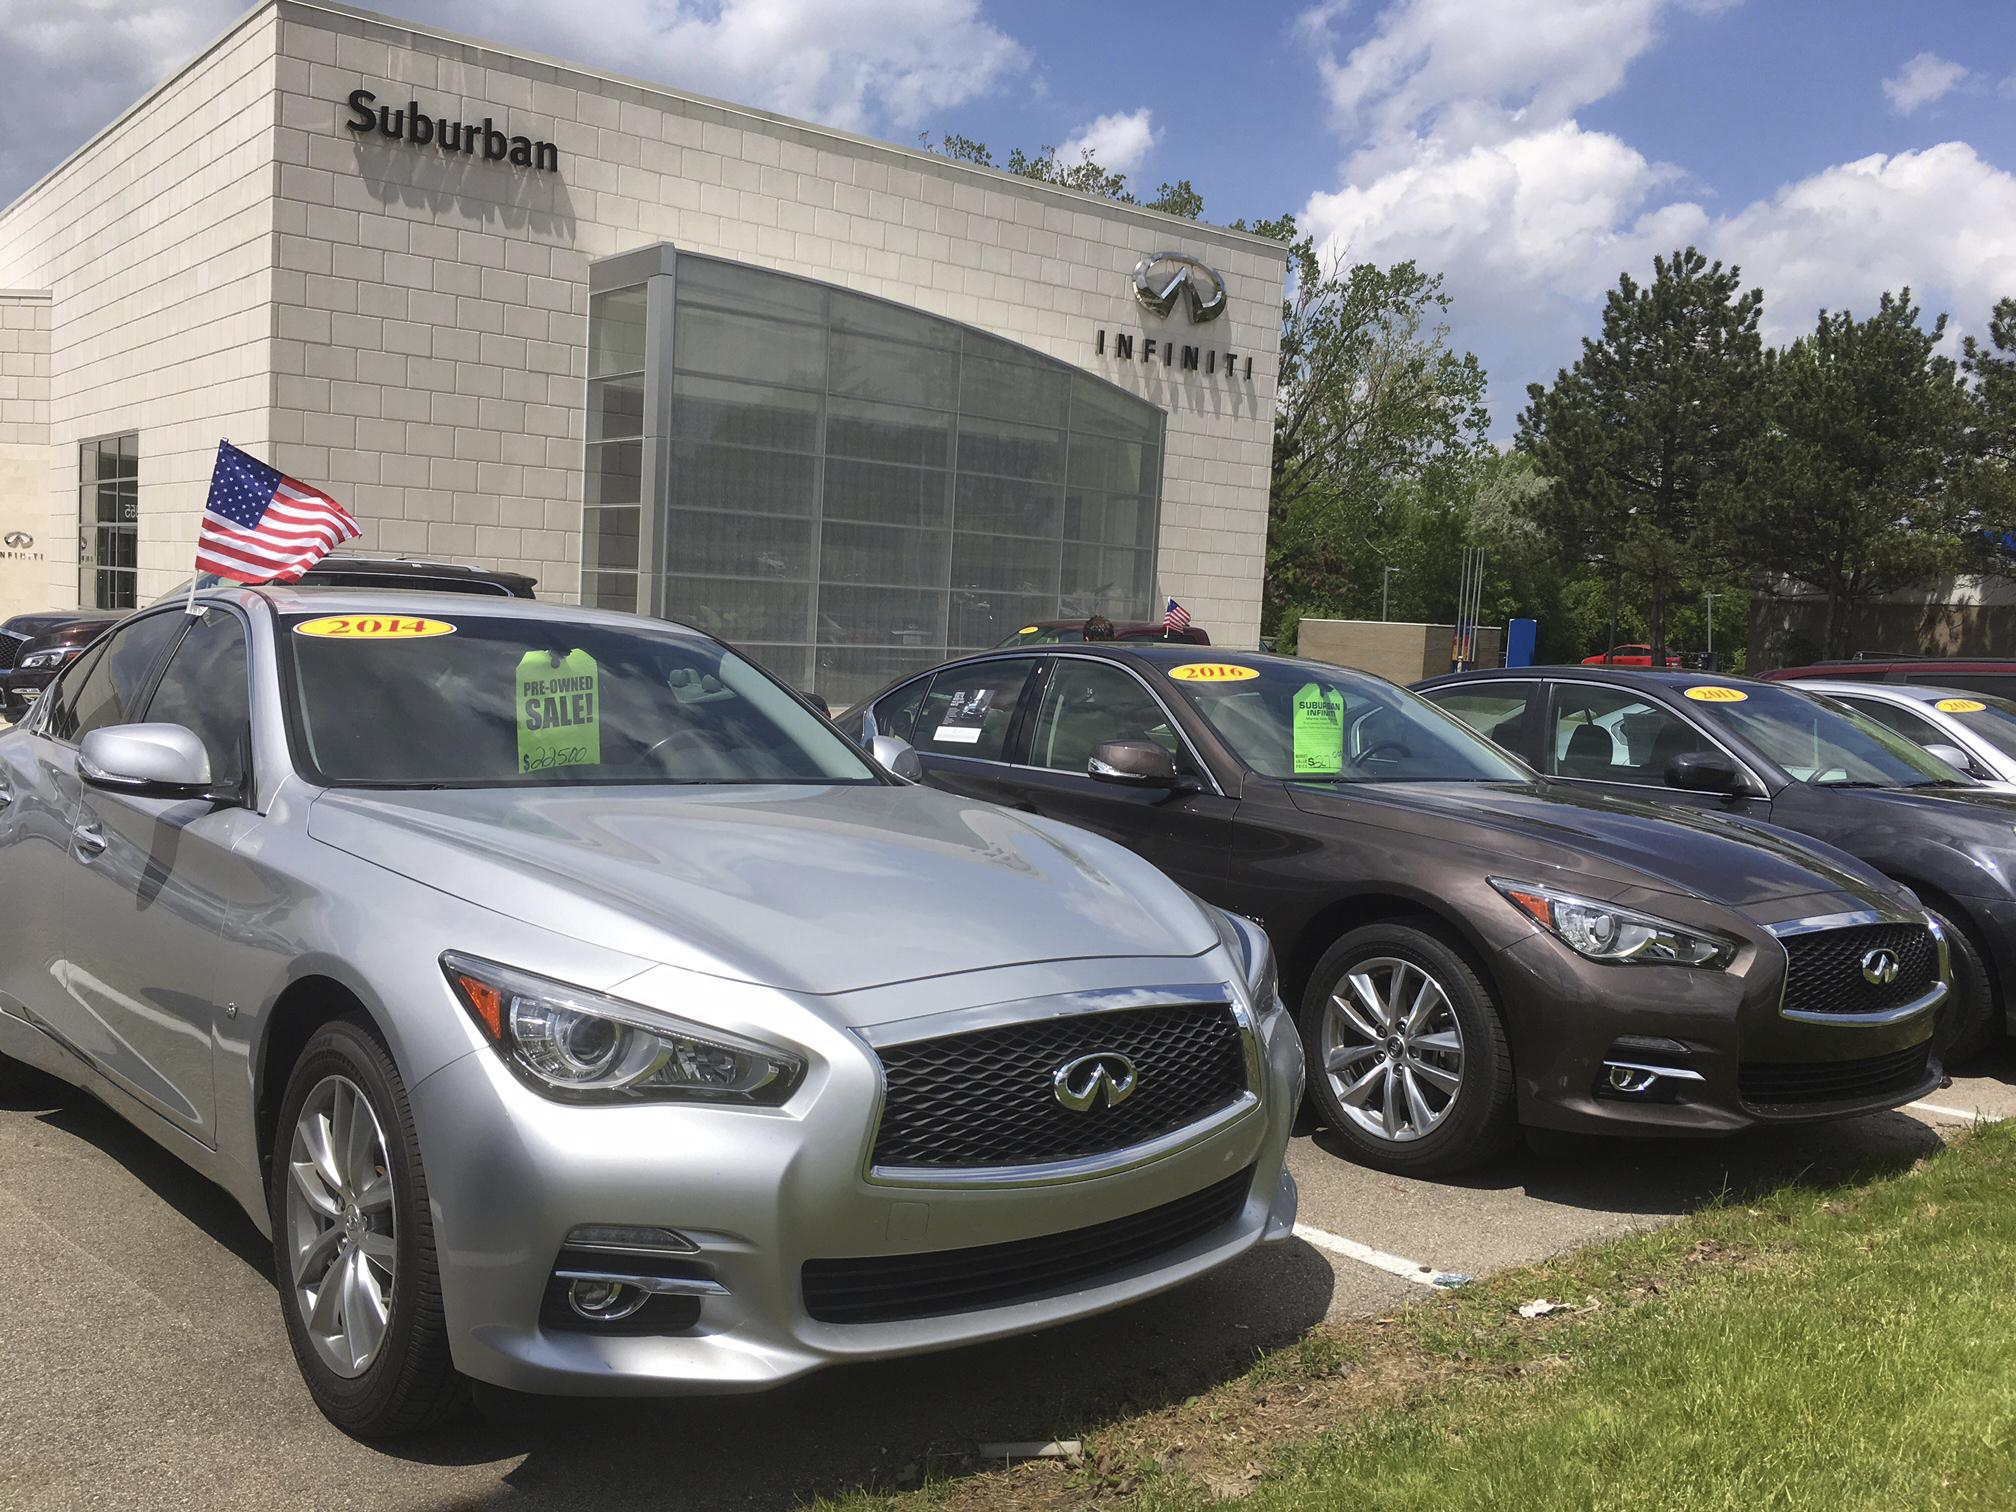 used infiniti q50 luxury sedans await ers at a dealership in the detroit suburb of novi